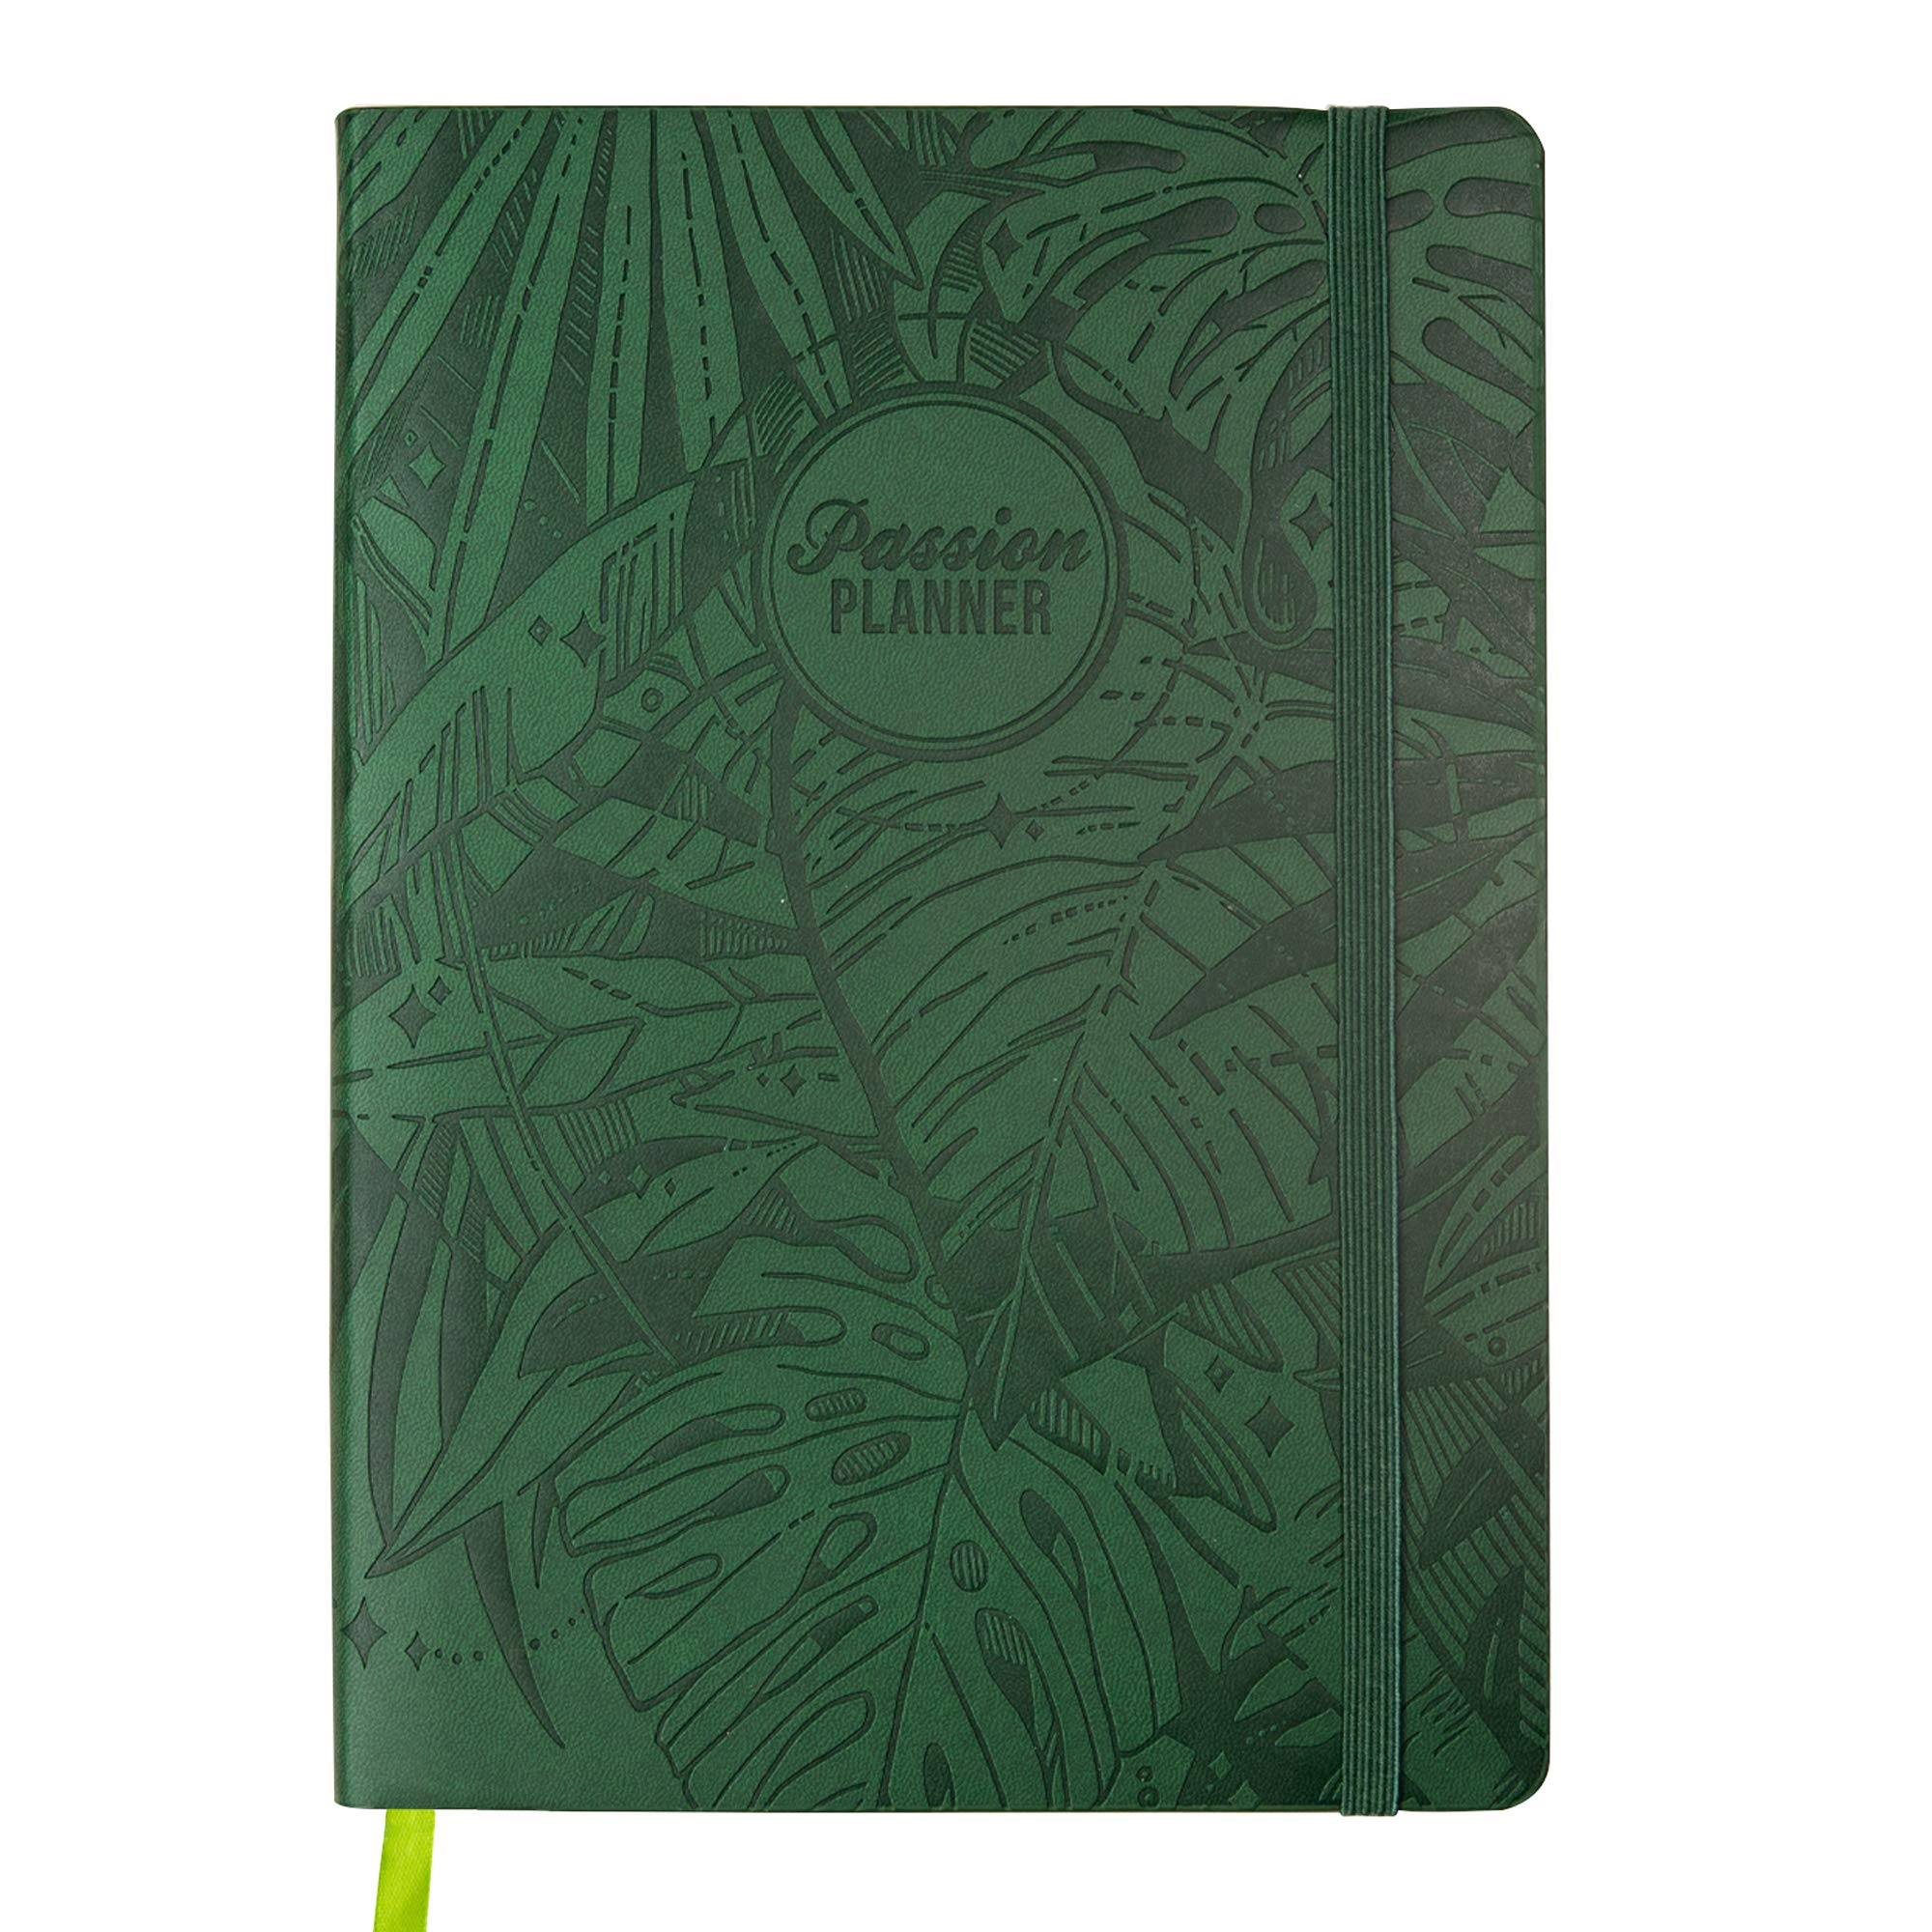 Passion Planner Medium Dated Jan-Dec 2020 - Goal Oriented Weekly Agenda, Reflection Journal (B5-6.9 x 9.8 in) Monday Start (Forest Green) by Passion Planner